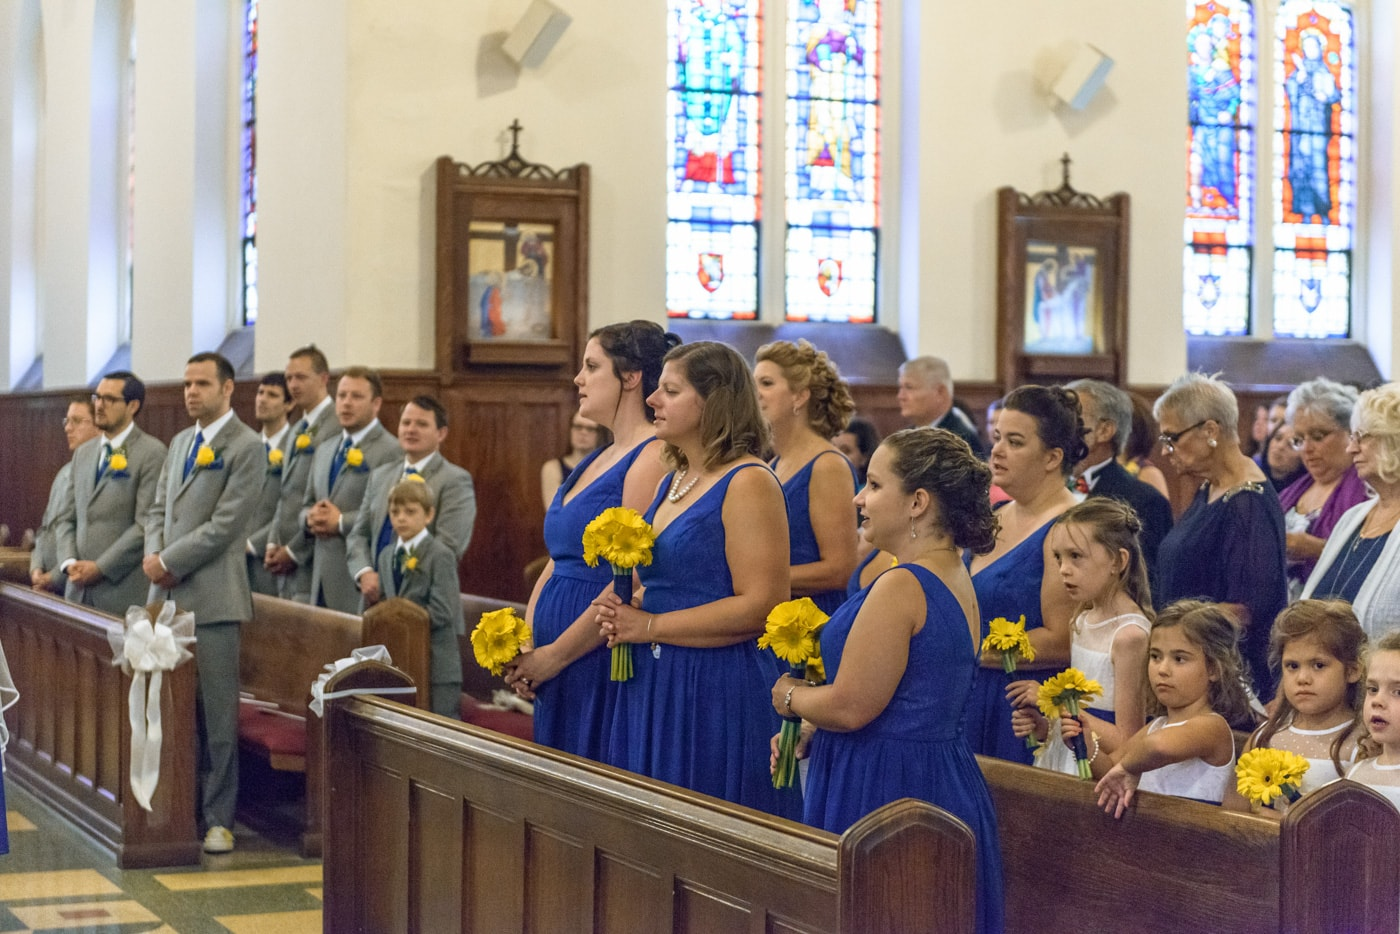 The wedding party standing in the pews during a wedding ceremony at St James Catholic Church in Falls Church, Virginia